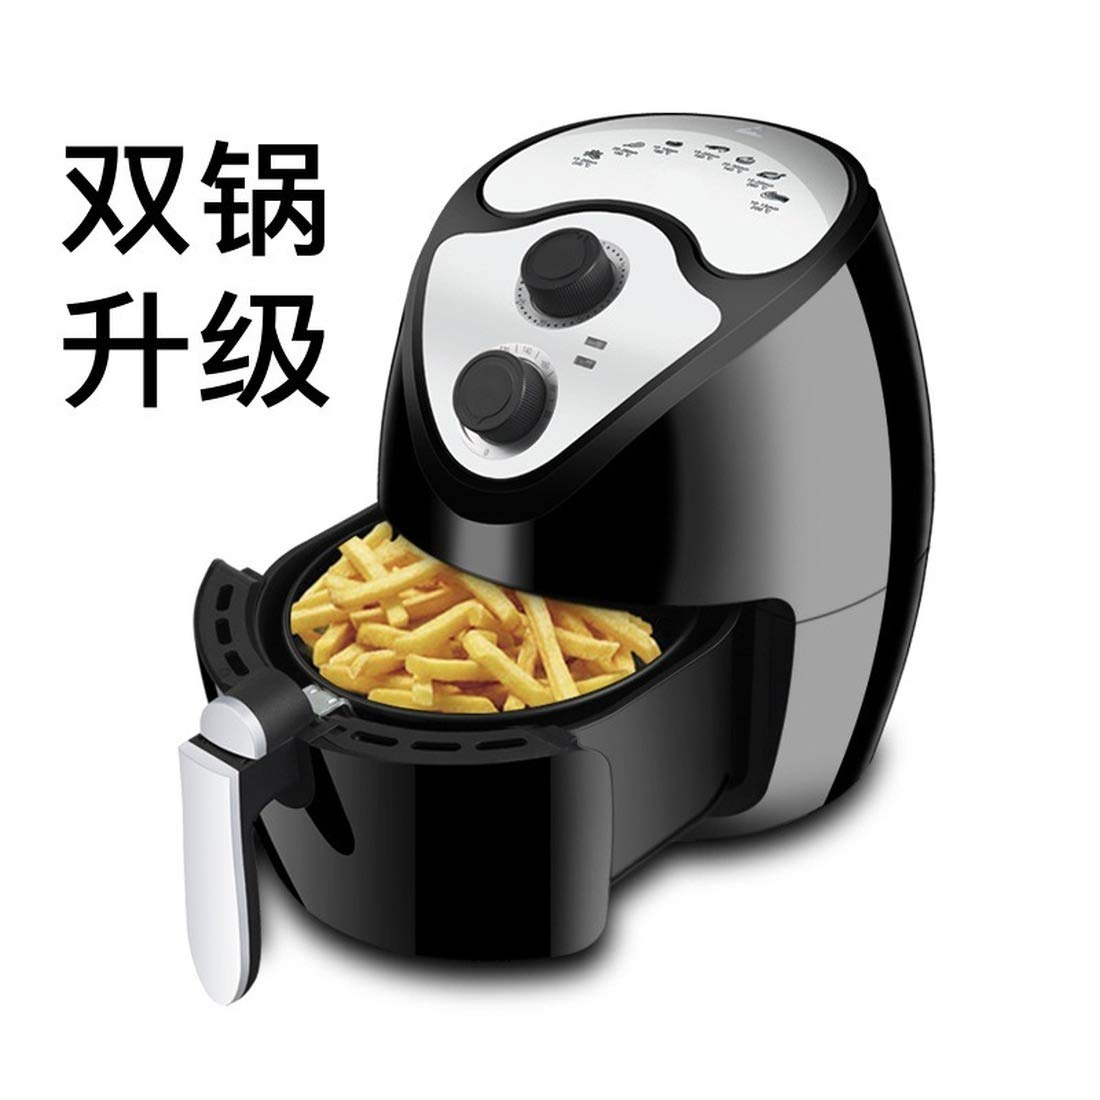 Electric Oven, Electric Fryer, air Fryer, French Fries Machine, Empty Fryer (European Standard (220-240V))